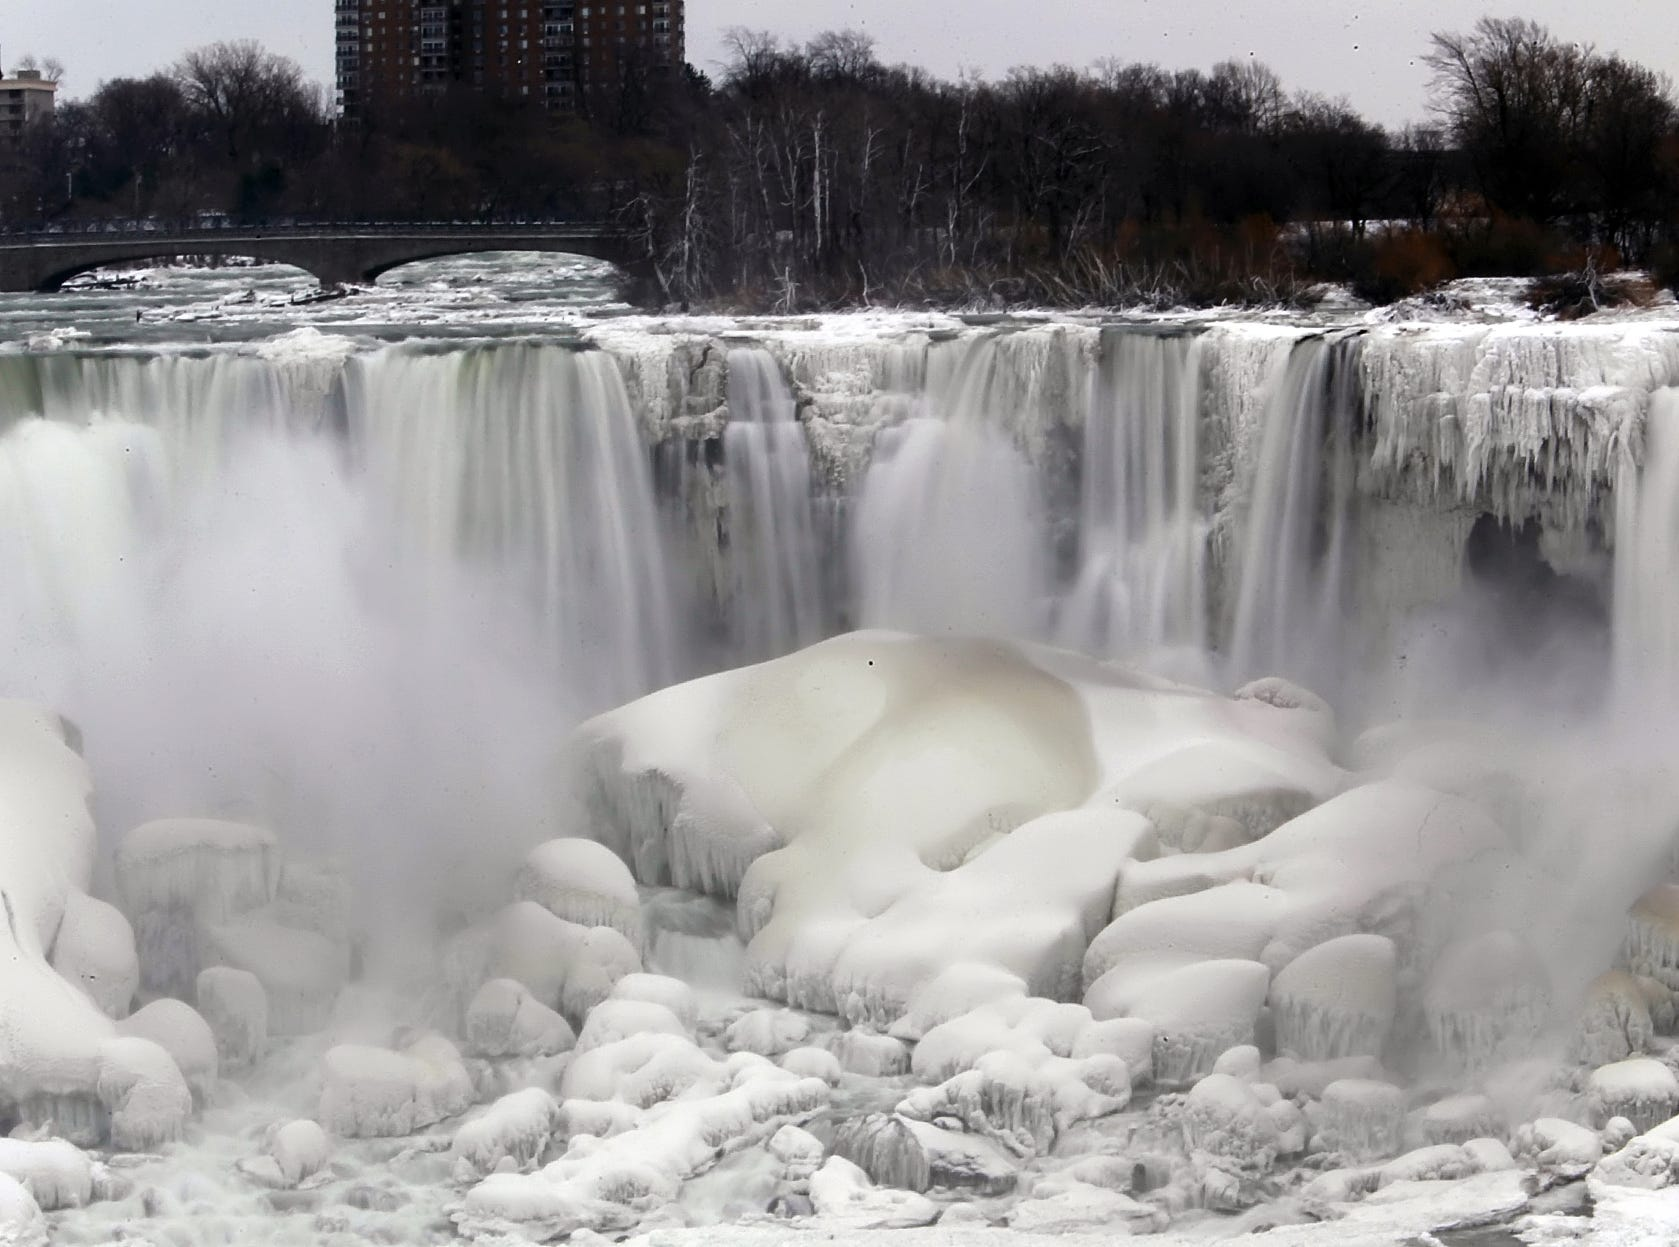 "The U.S. side of Niagara Falls has begun to thaw after being partially frozen from the recent ""polar vortex"" that affected millions in the U.S. and Canada, Friday, Jan. 10, 2014 in Niagara Falls, N.Y., as seen from the Canadian side of the falls."